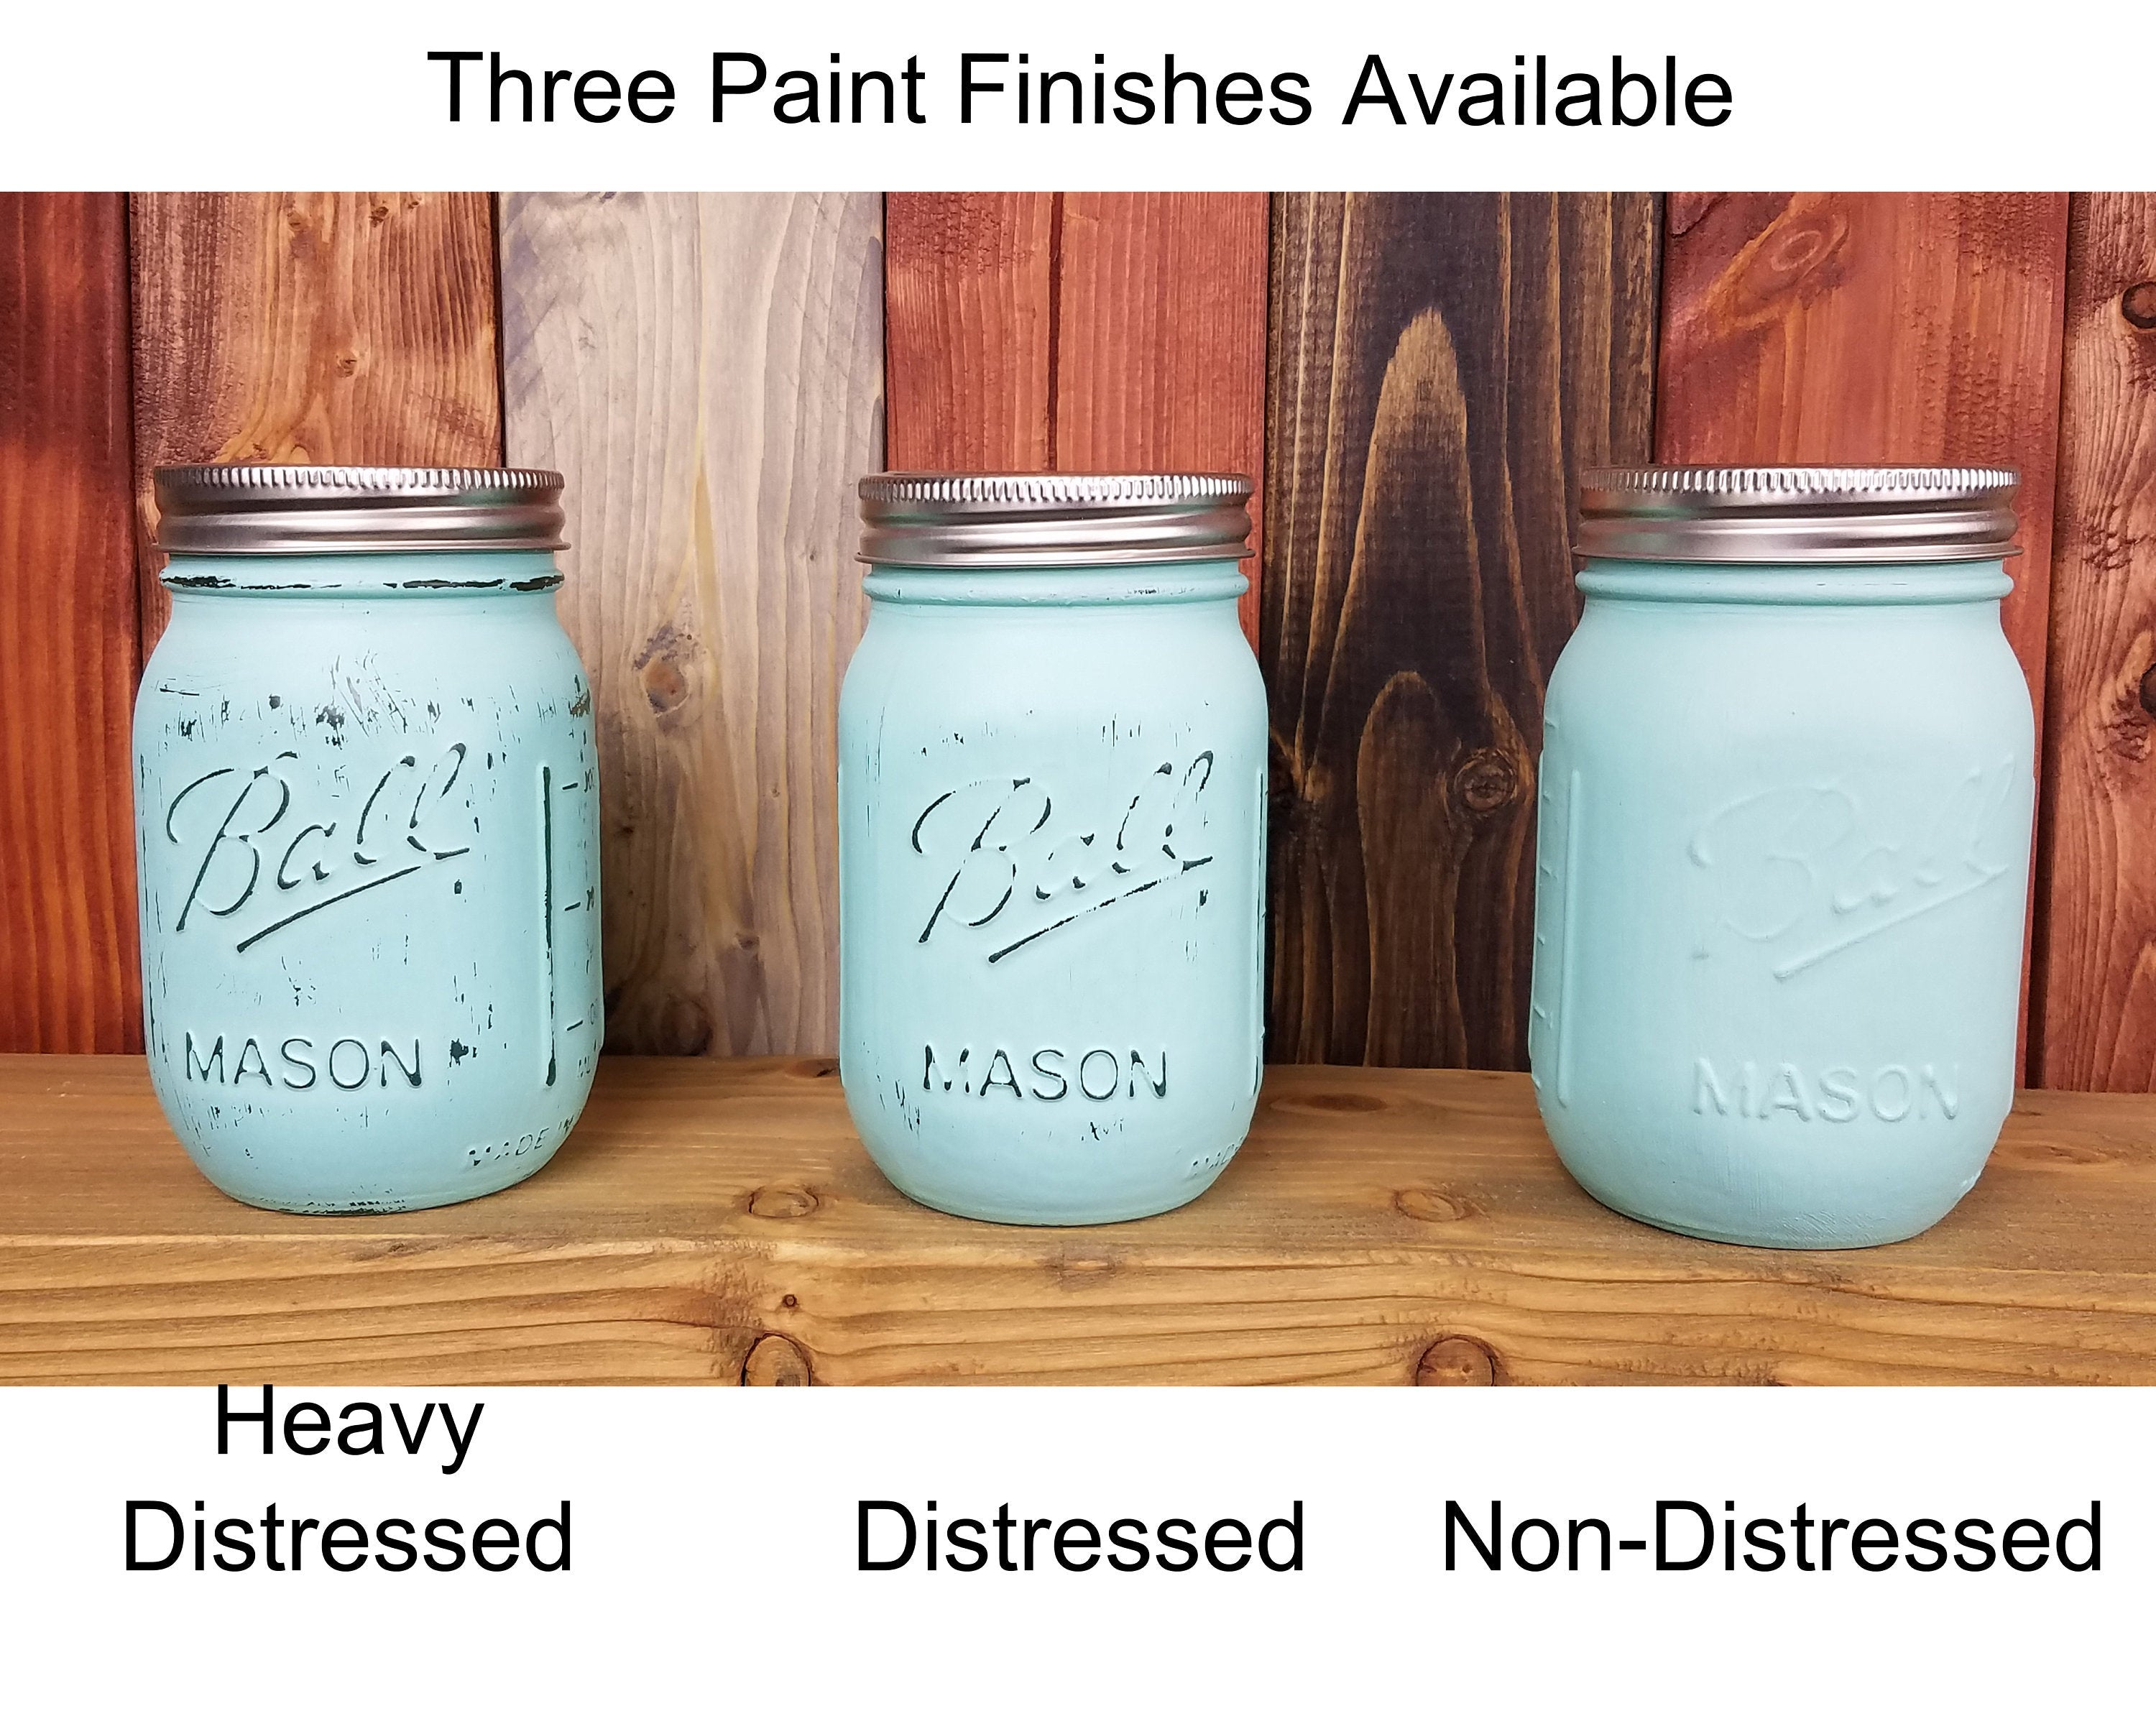 Master Bathroom Mason Jar Set, 20 Paint Colors - Renewed Decor & Storage